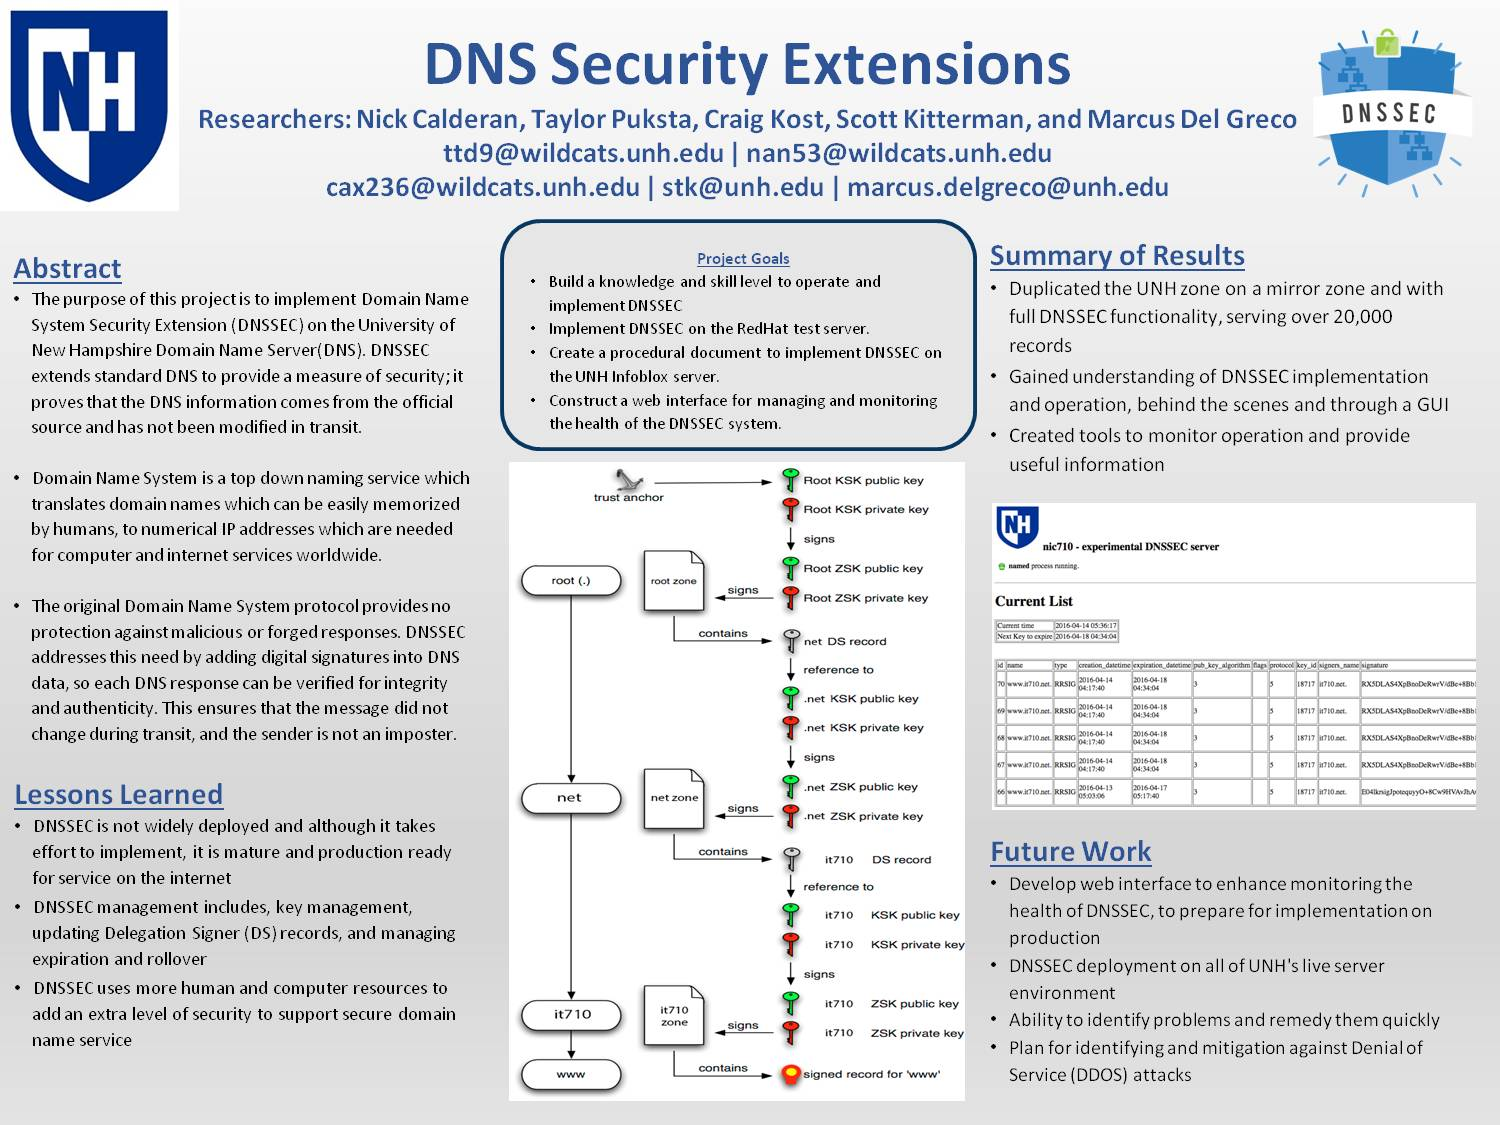 Dnssec Urc/Ise Poster by cax236